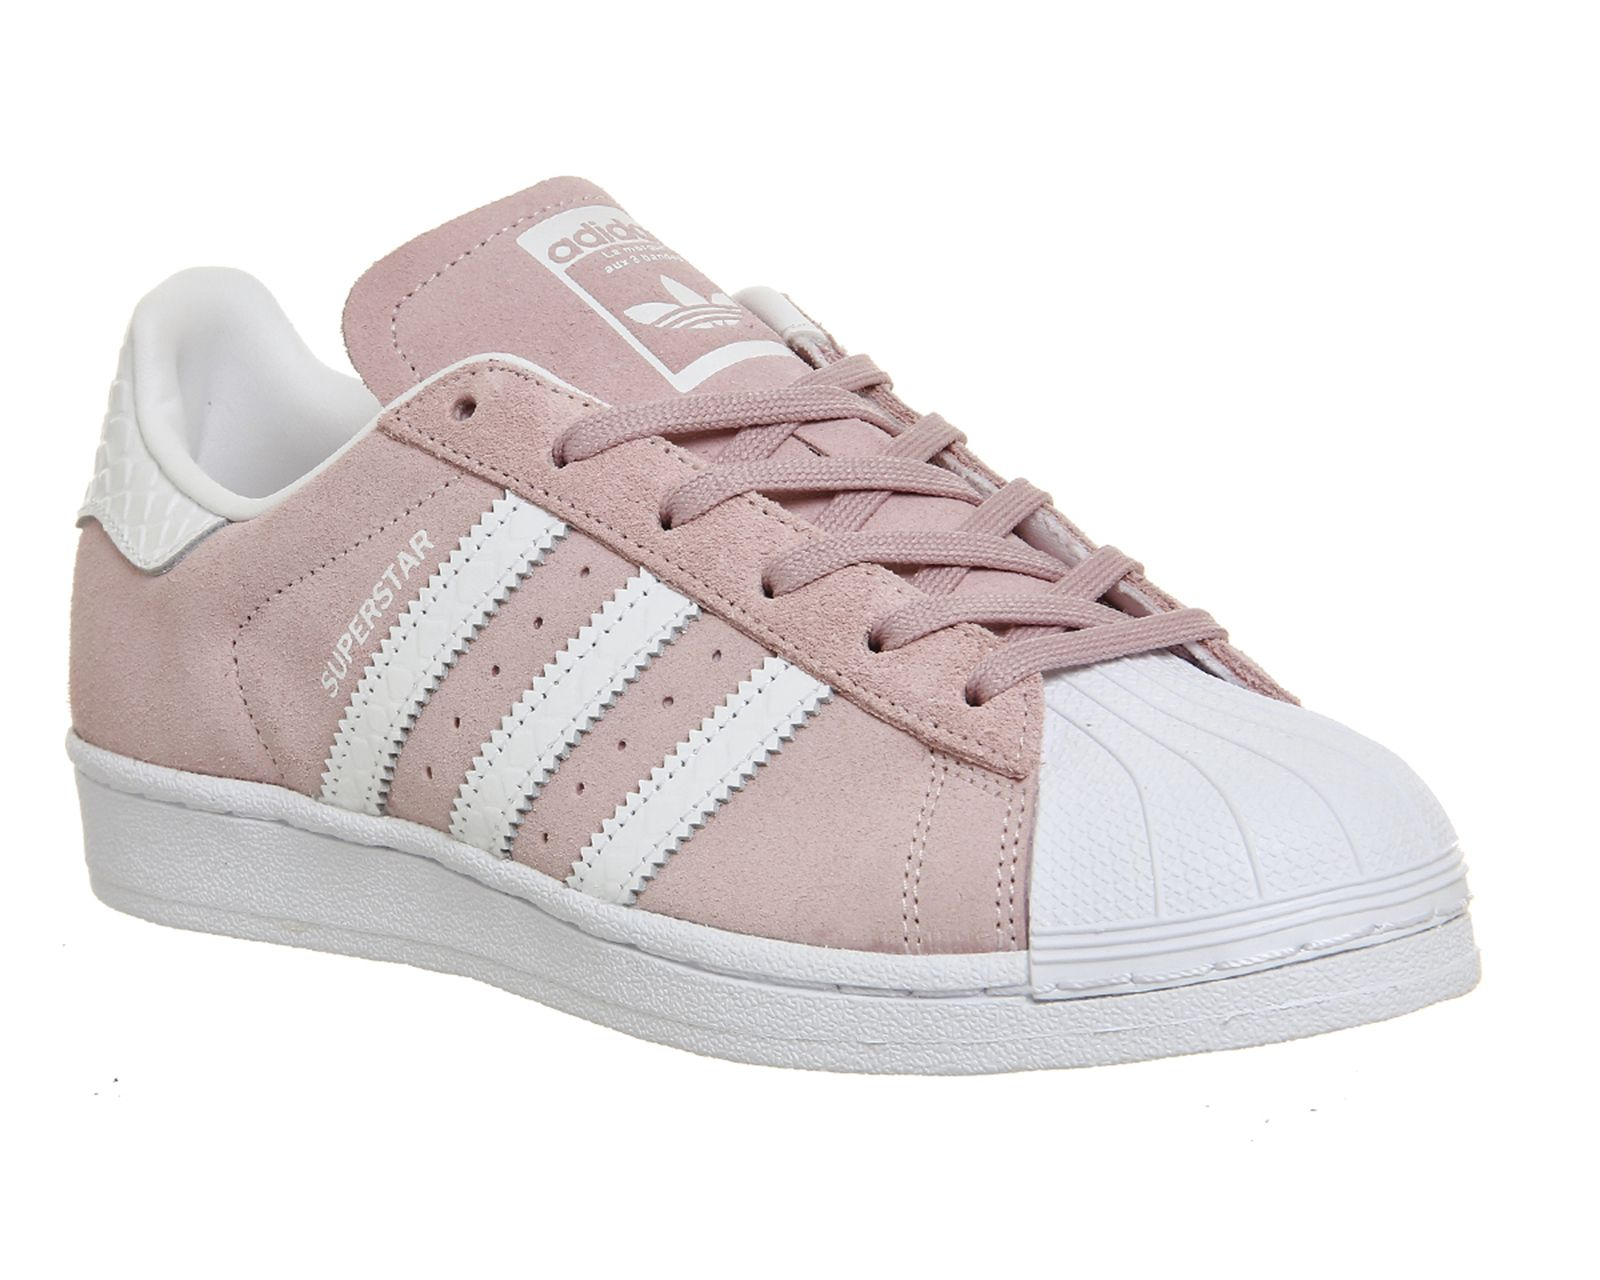 adidas superstar rose gold snakeskin